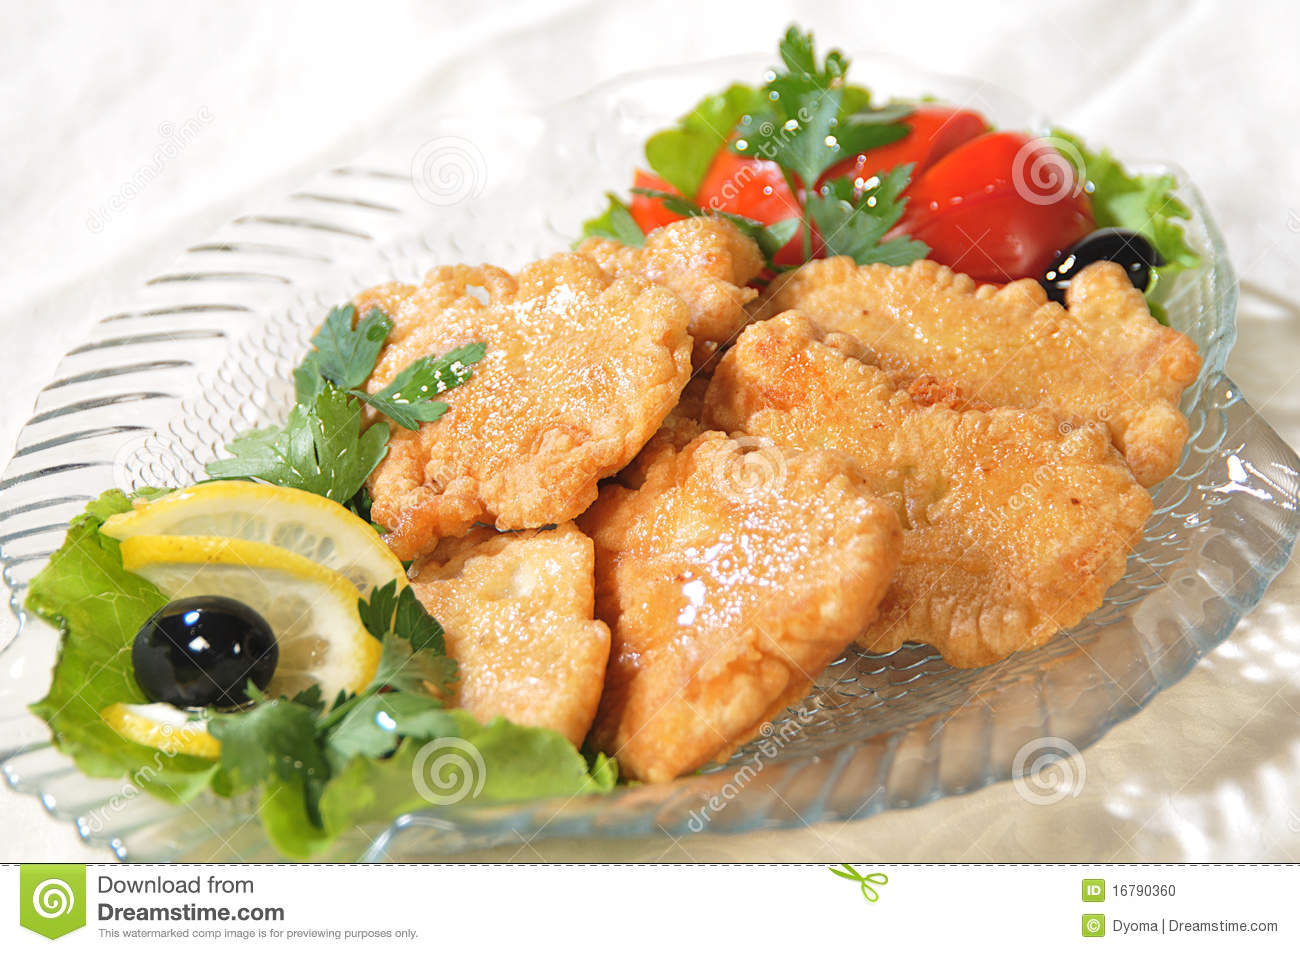 Pieces of fish filet stock photo image 16790360 for Piece of fish